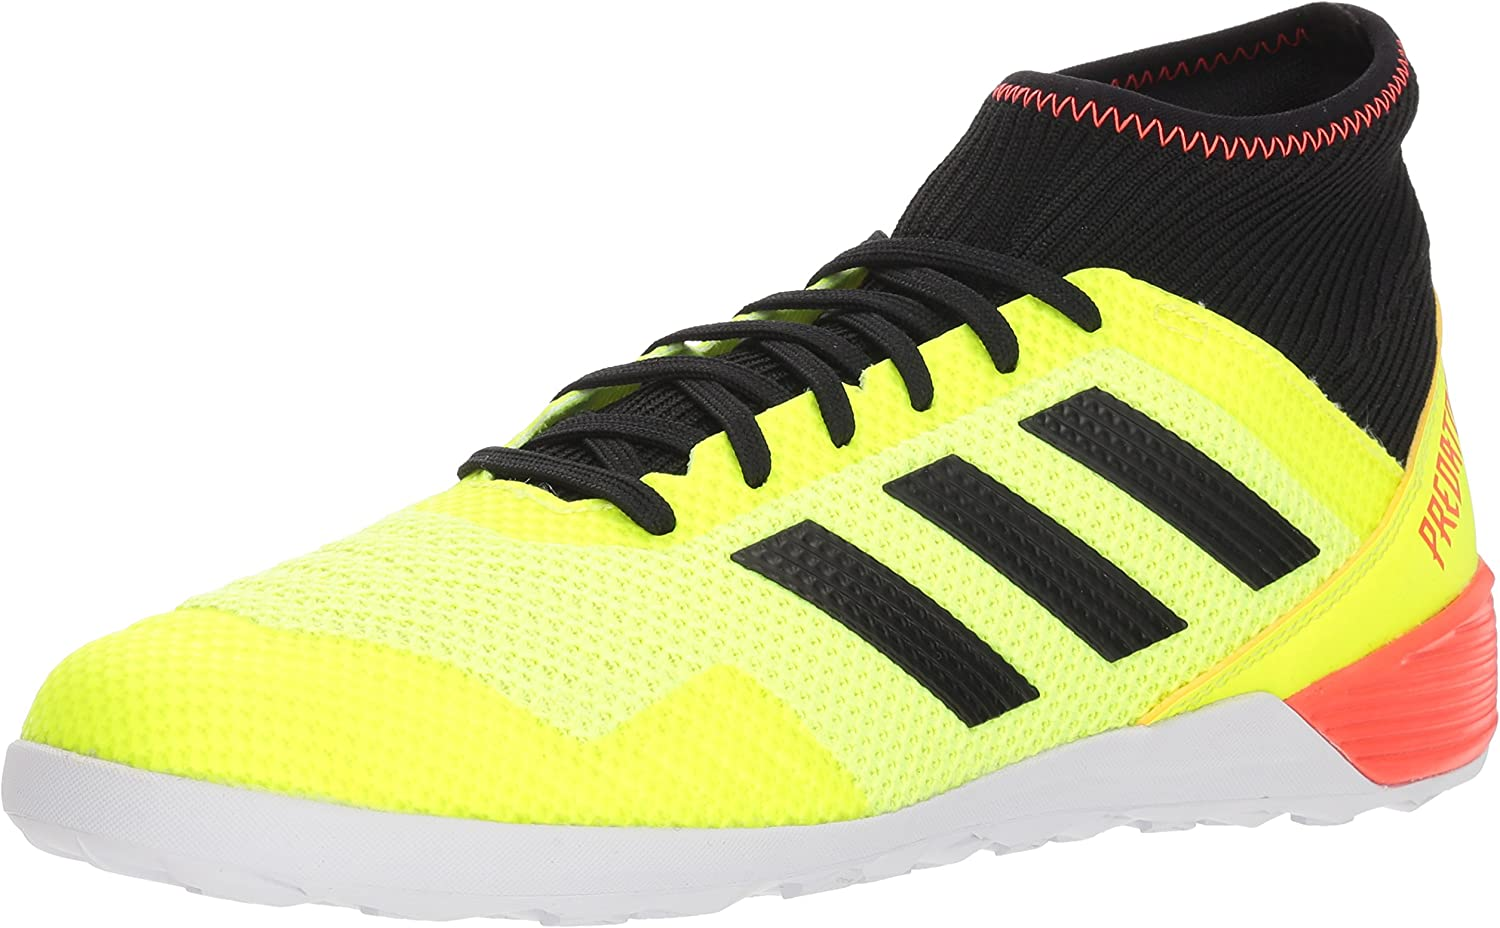 adidas Predator Tango Popular Ranking integrated 1st place shop is the lowest price challenge 18.3 Indoor Shoe Soccer Solar Yello mens